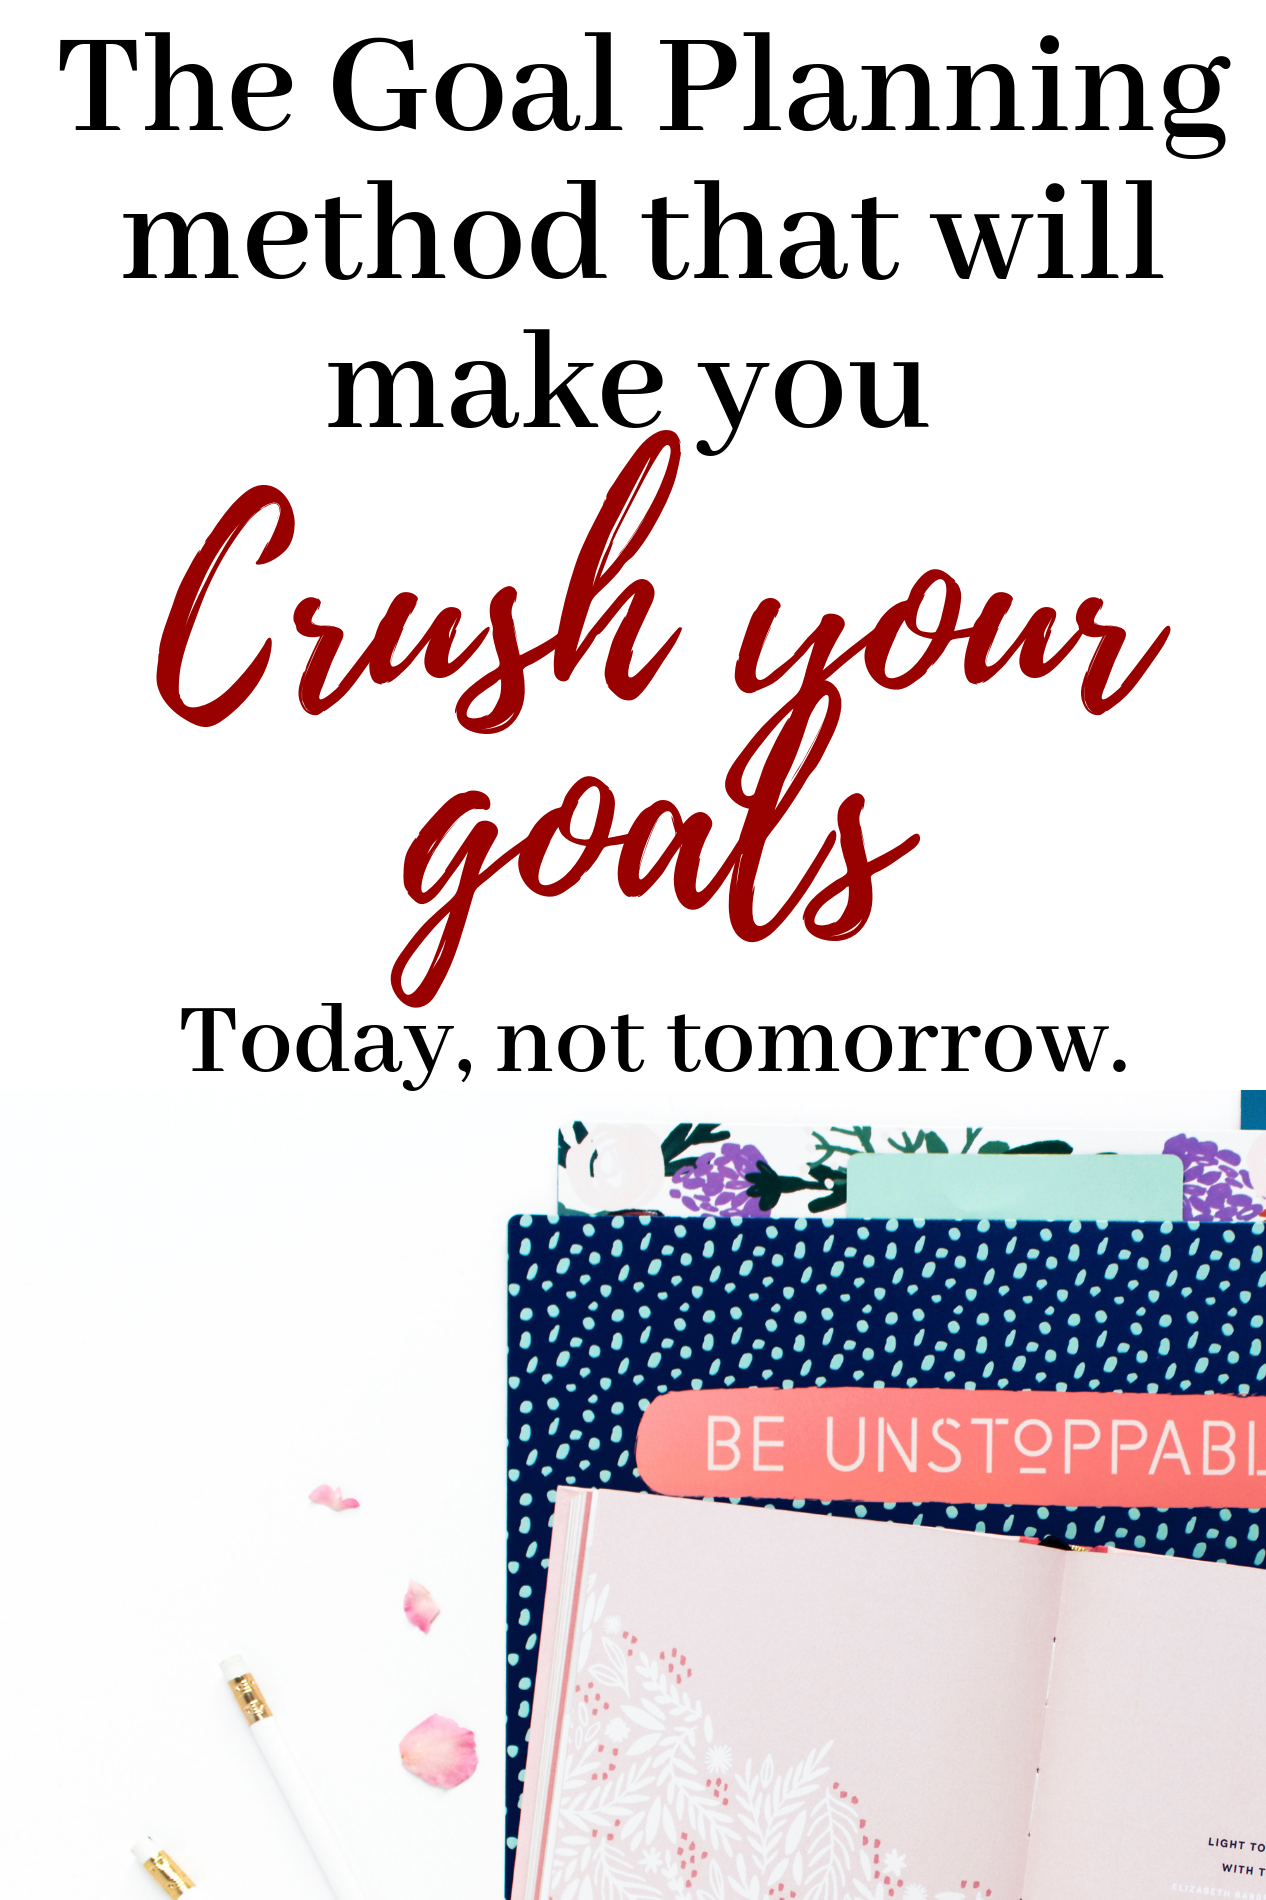 Goal Planning Turn Your Goals Into Actions